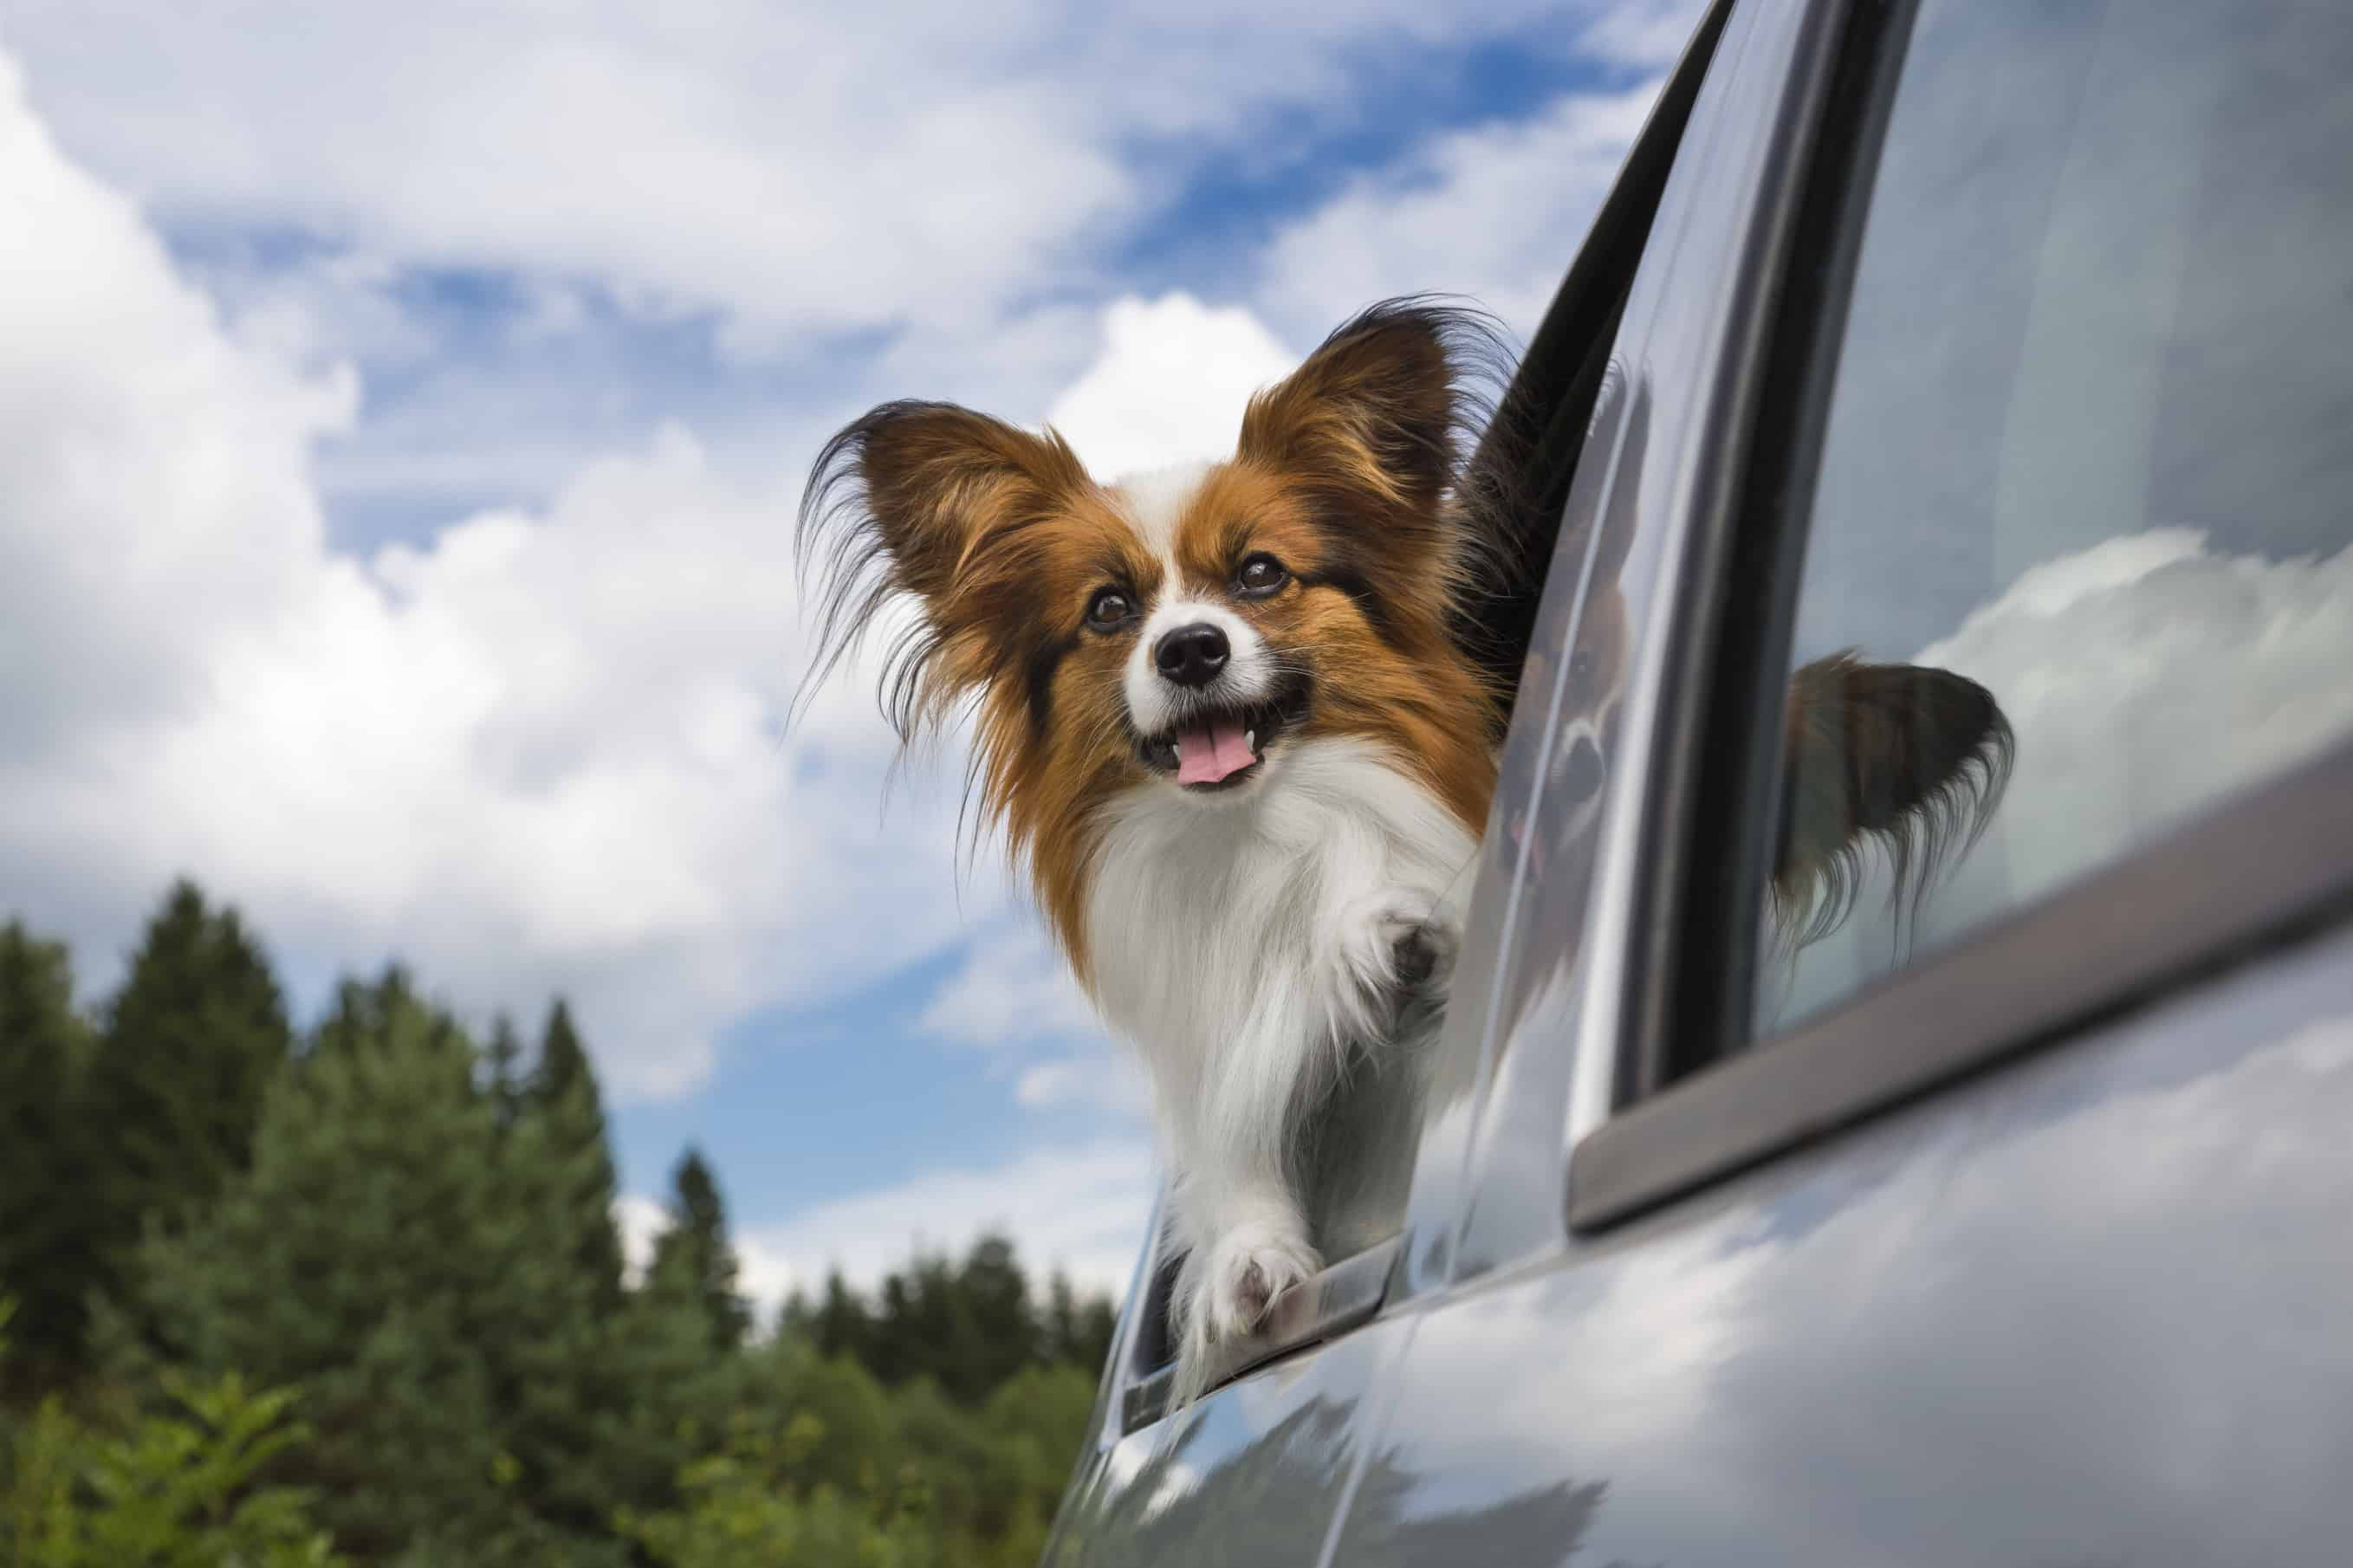 Make sure your dog is comfortable and safe while traveling